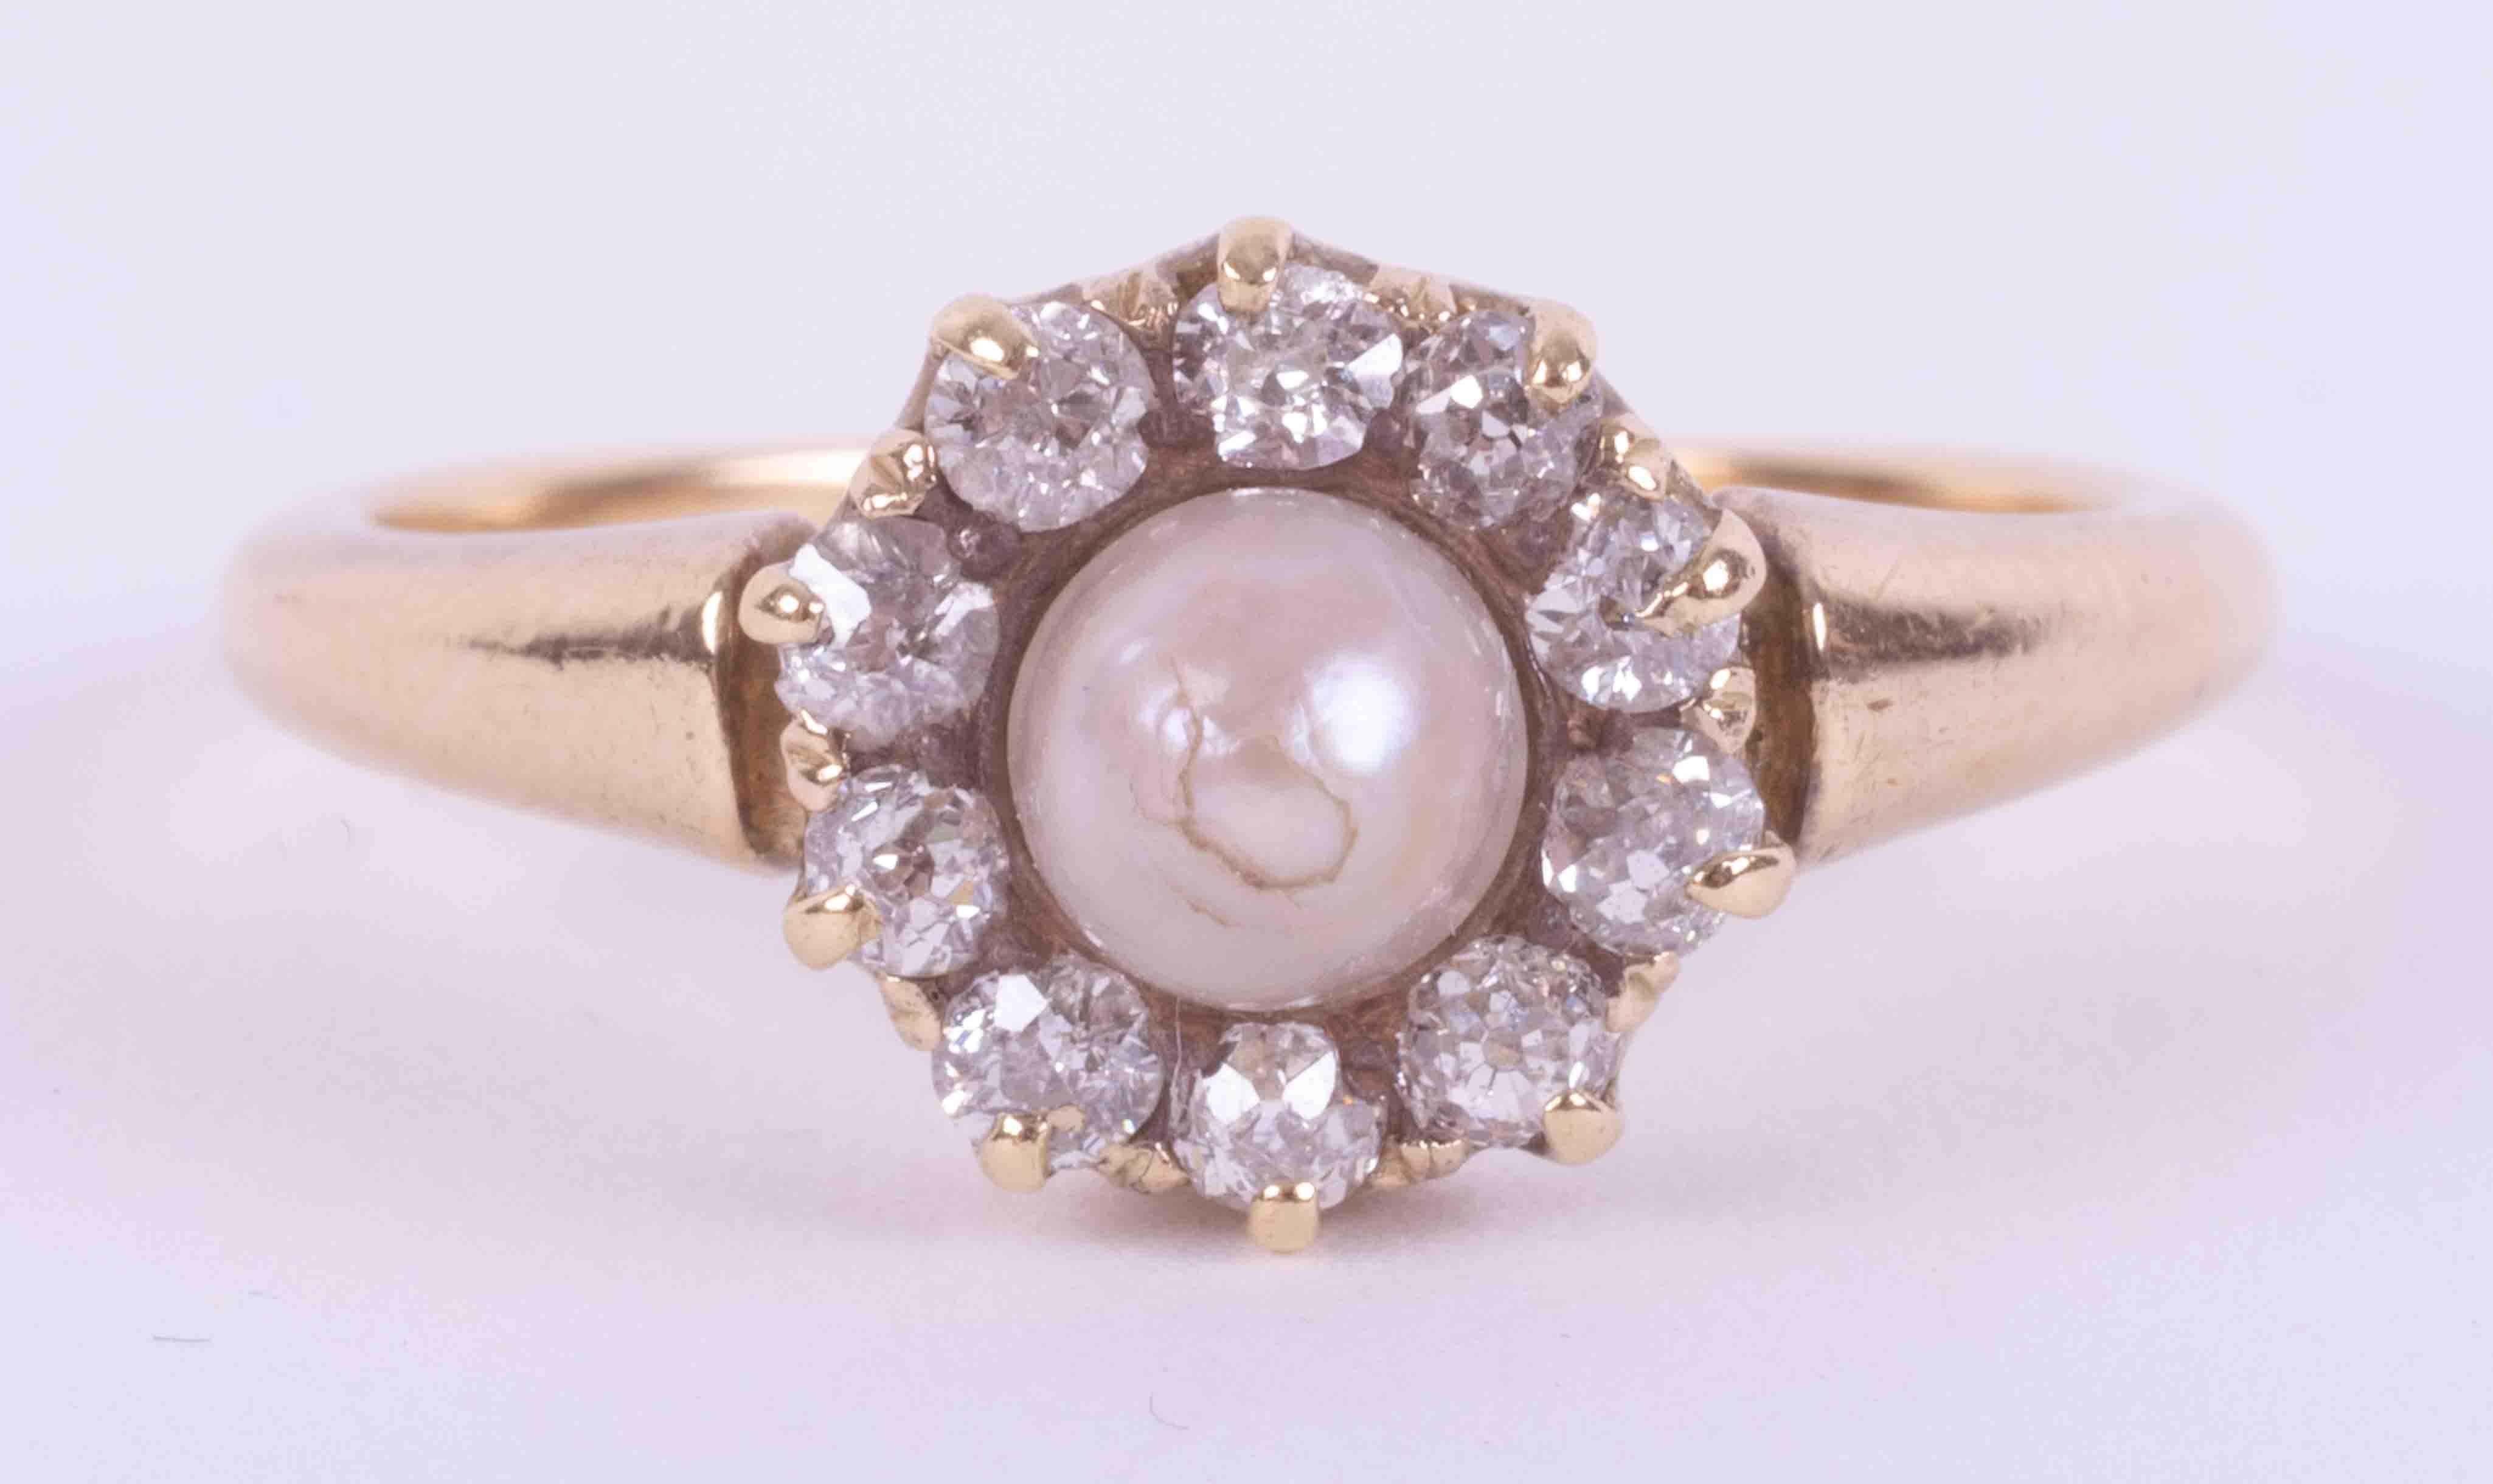 An 18ct yellow gold (not hallmarked or tested) antique ring set with a central pearl surrounded by